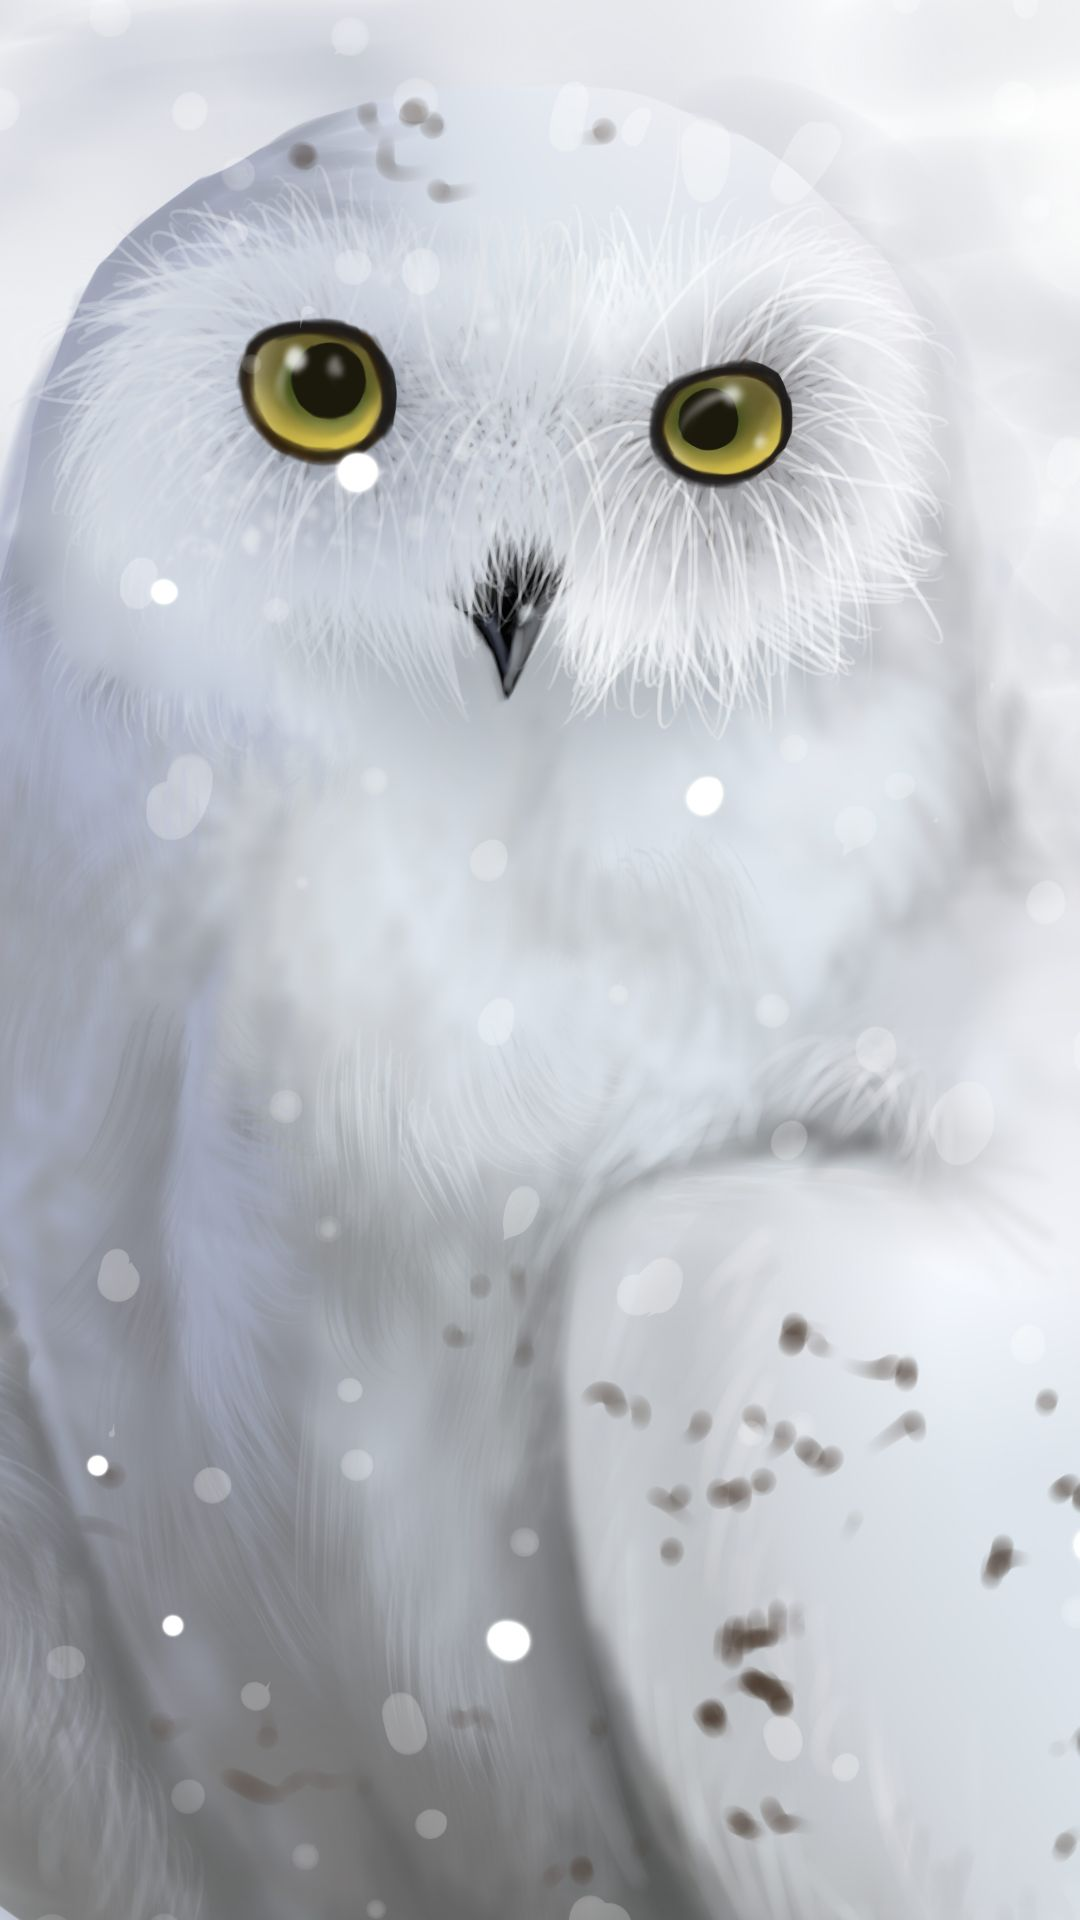 1080x1920 Snowy Owl (1080x1920) Mobile Wallpaper | Wallpapers For iPhone and ...